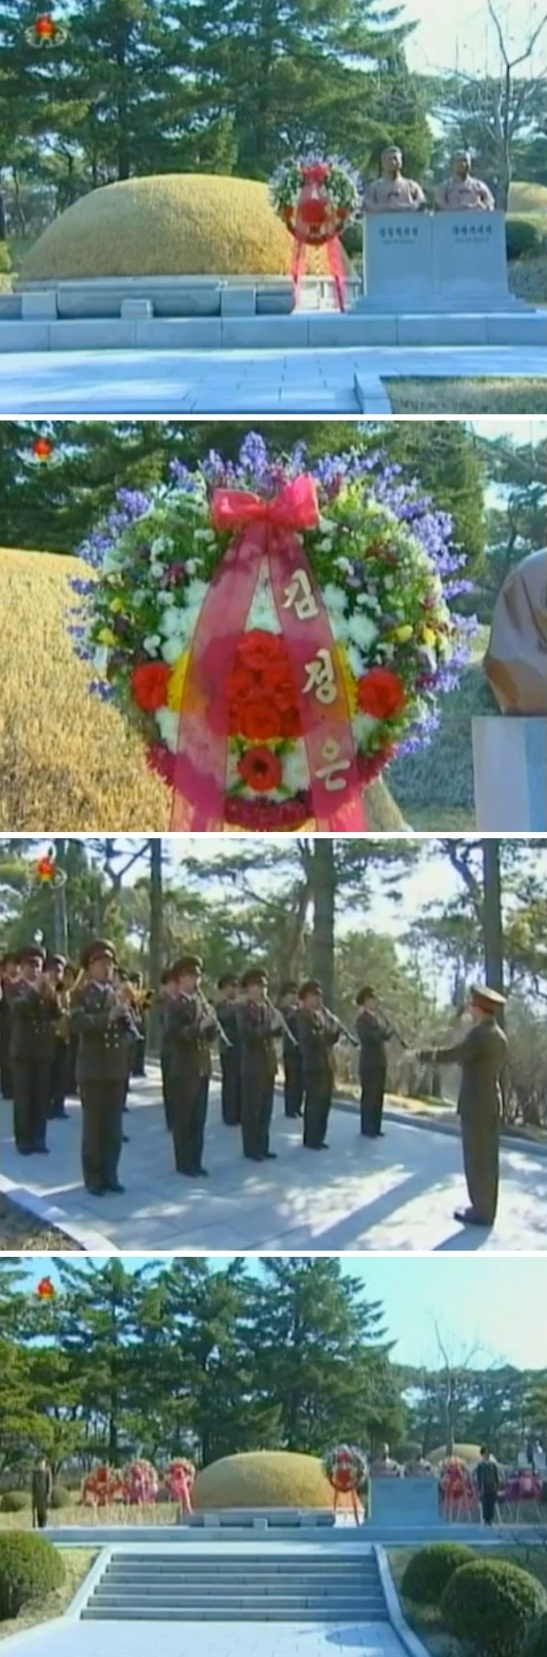 A floral wreath-laying ceremony at the grave Kang Pan Sok in Mangyo'ngdae, Pyongyang on 21 April 2013 (Photos: KCTV screengrabs)